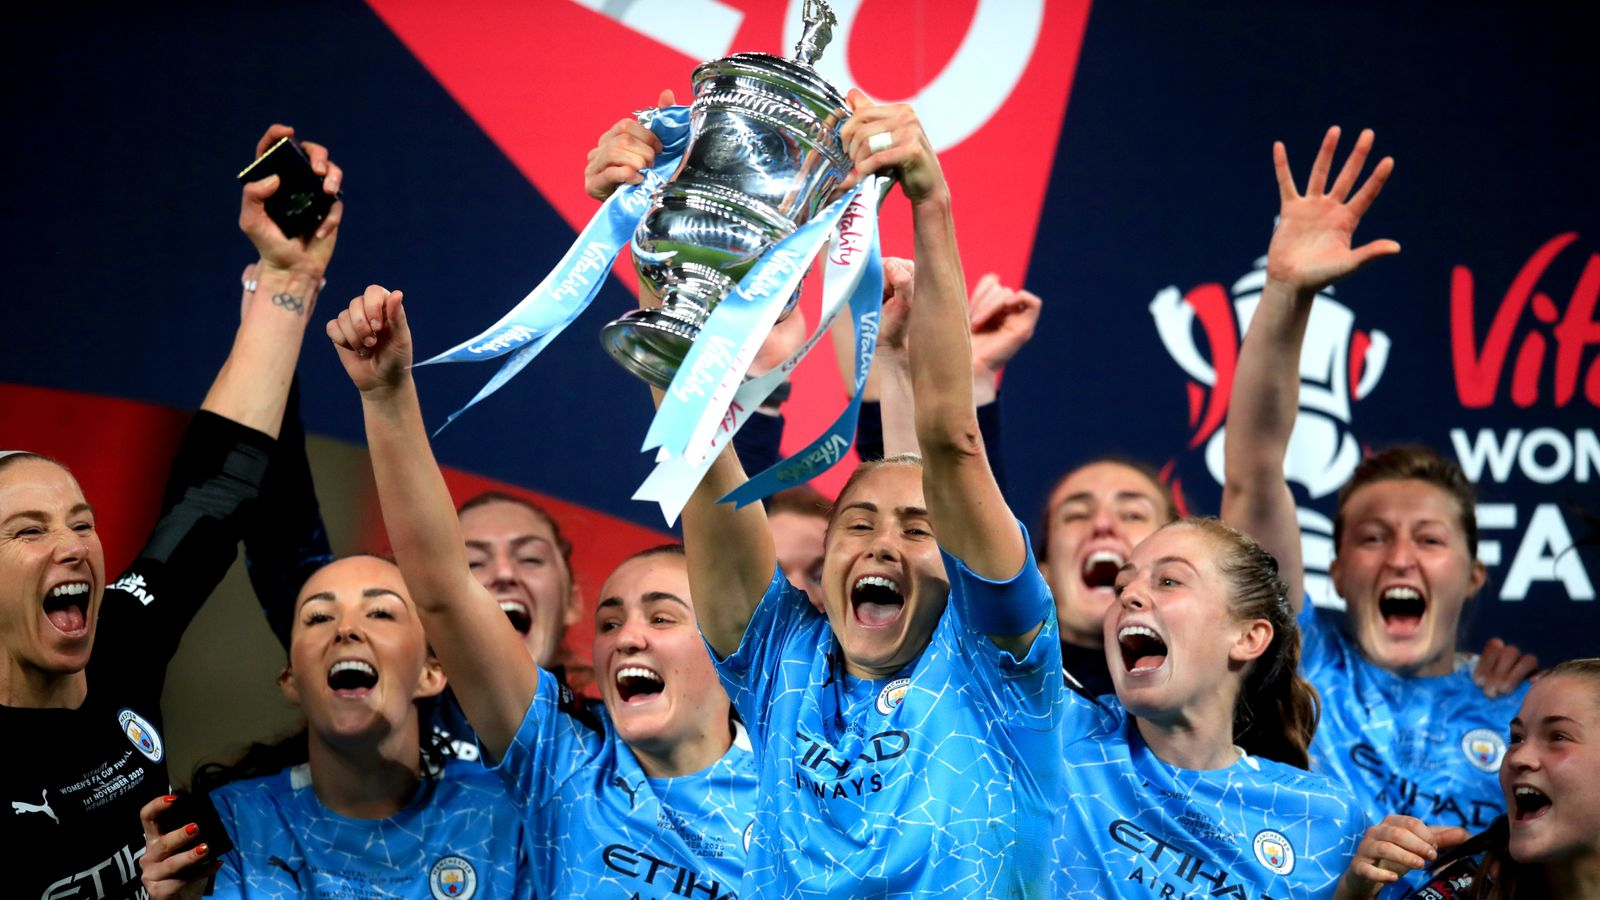 Women's FA Cup: Final three rounds to be completed in 2021/22 season after coronavirus delay